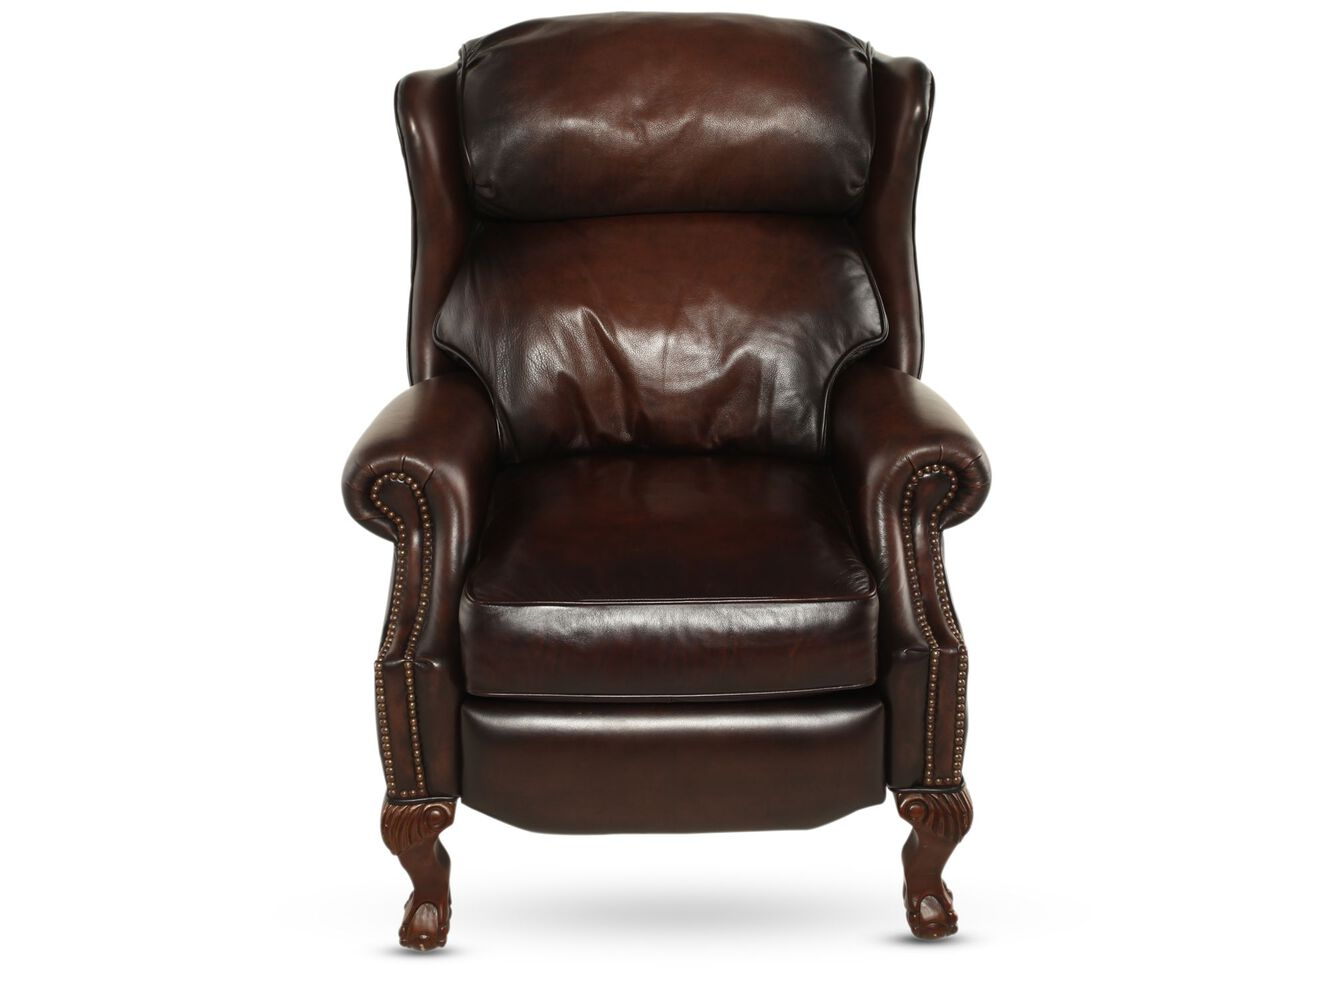 bernhardt briggs leather recliner bedroomsplendid leather desk chair furniture office sealy